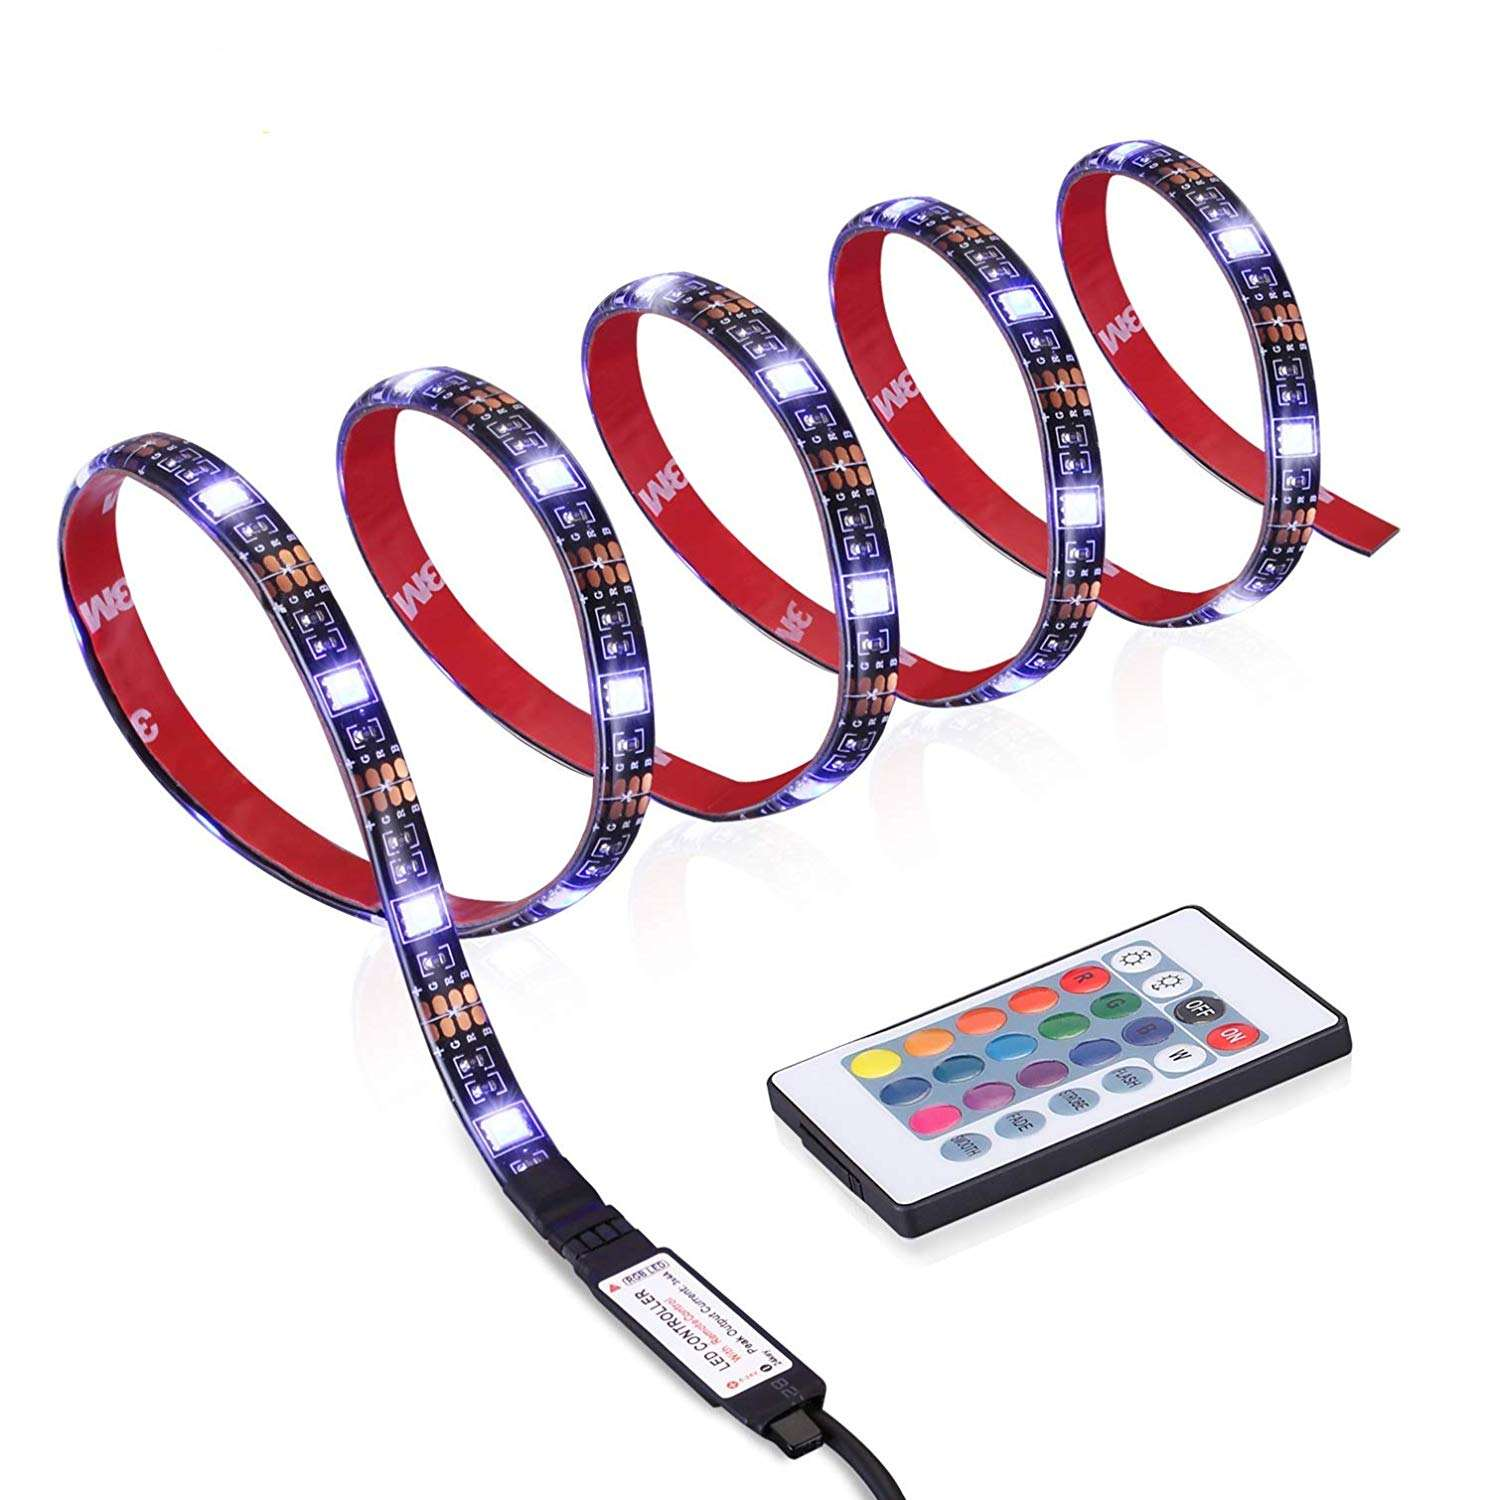 Smart LED 1M 2M 3M 4M 5M 5050 DC5V IP65 Flexible RGB TV Backlight kit USB led Strip Light with 24 Key IR Remote Controller